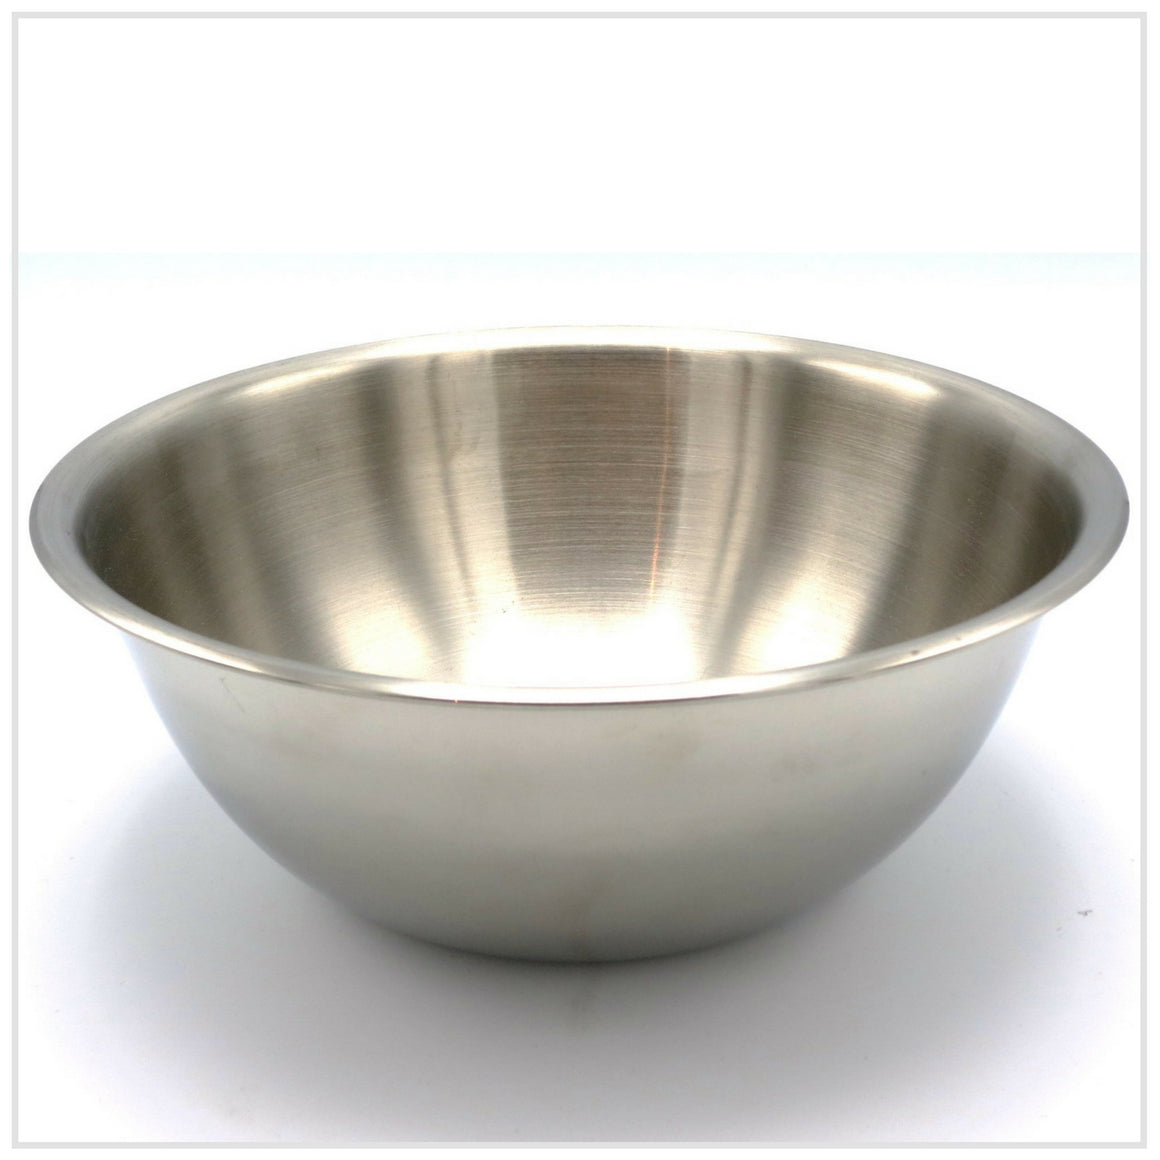 De Buyer Hemispherical Bowl in Stainless Steel 24cm